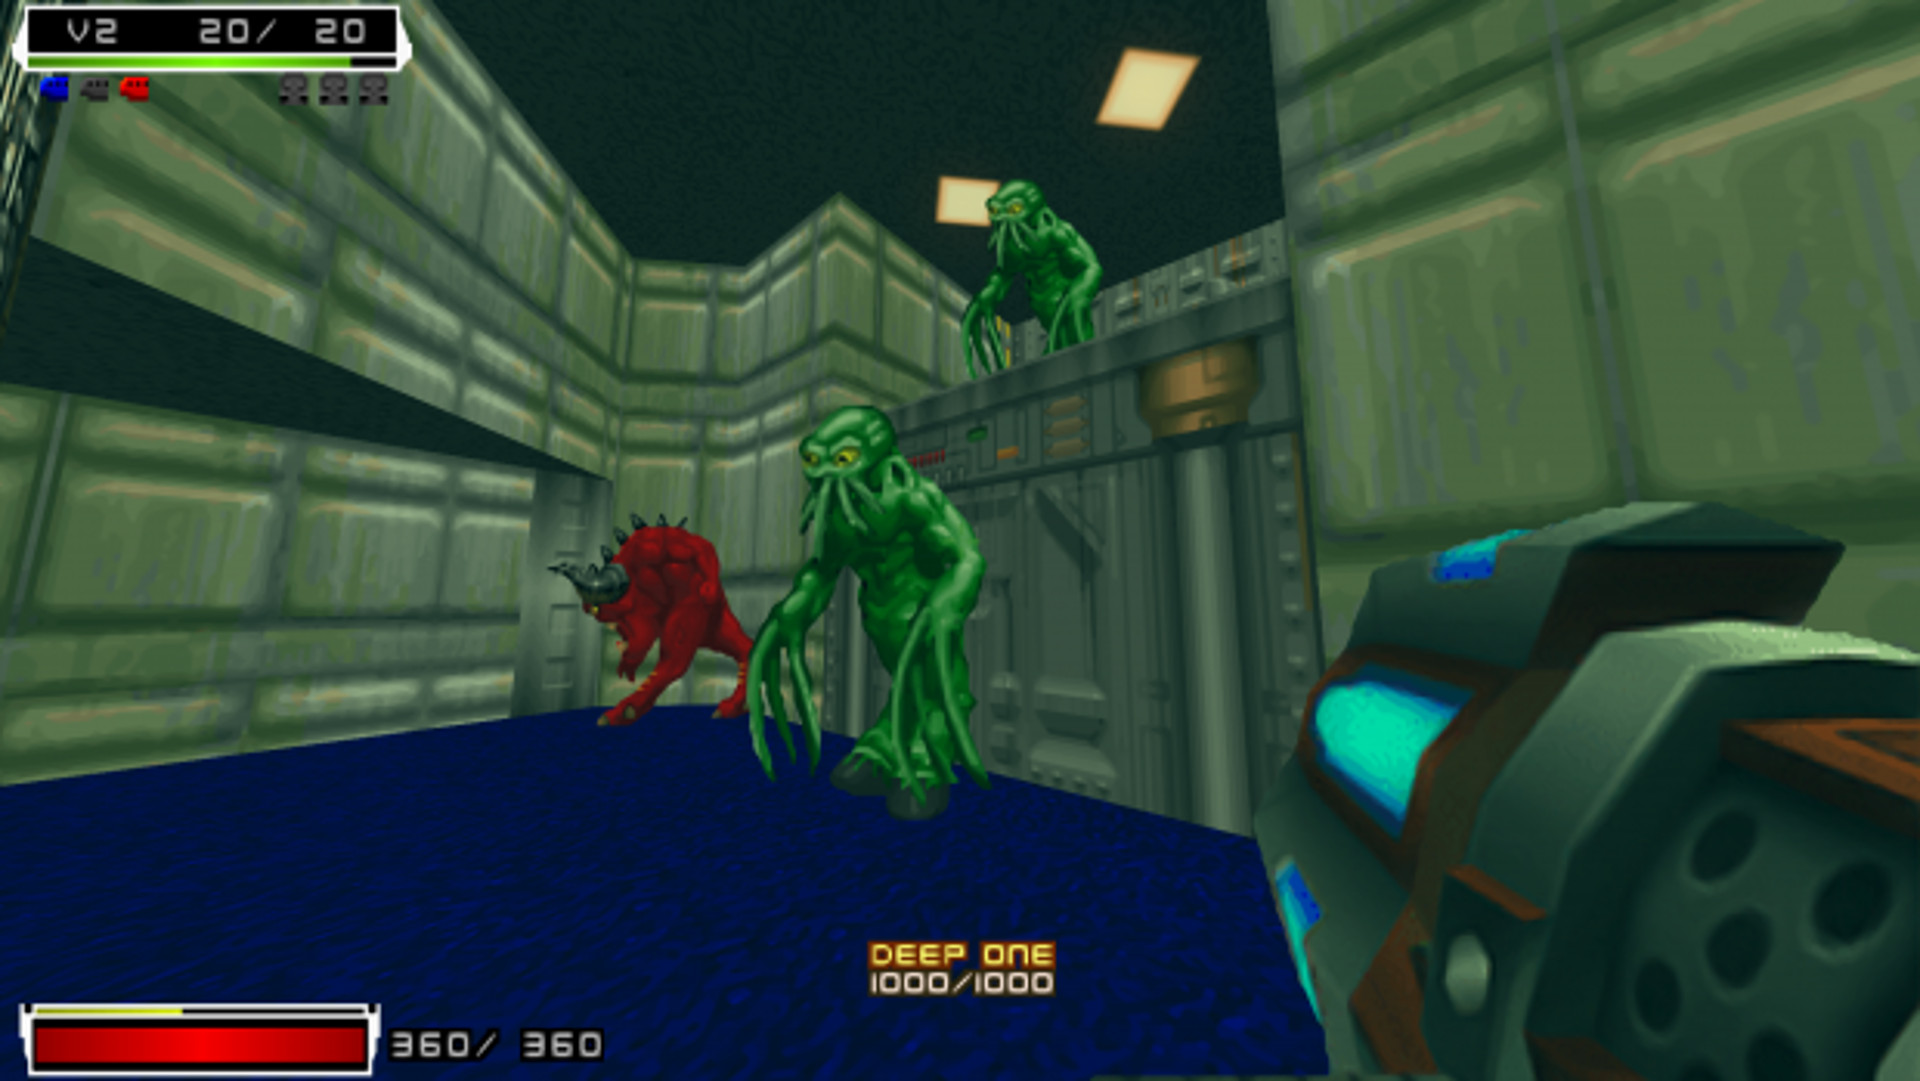 Ratchet and Clank become Doom Guy in this Doom 2 mod